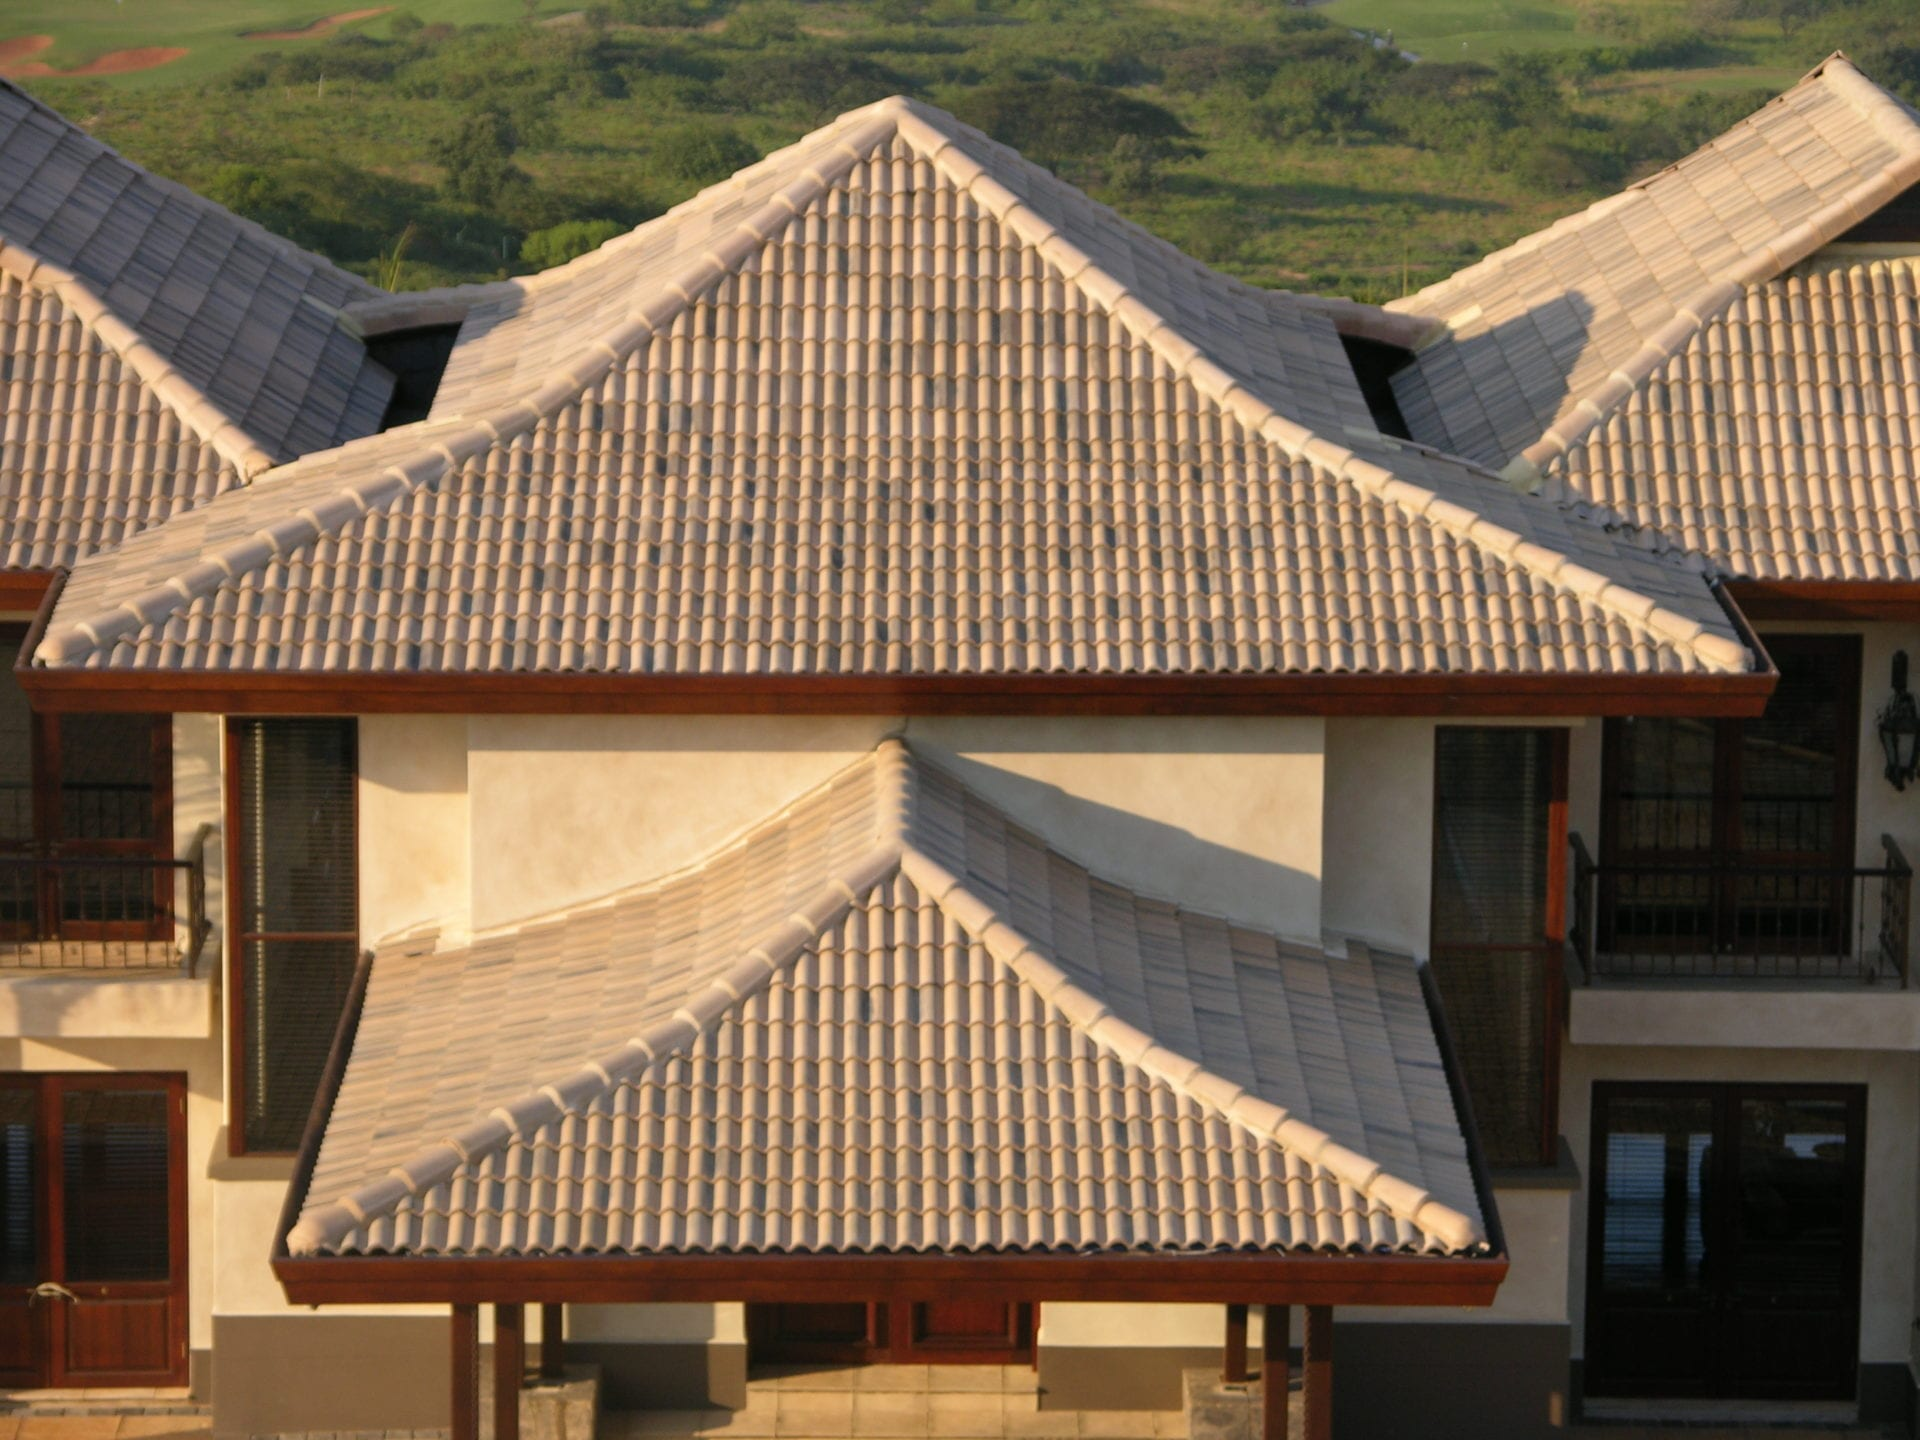 Marley Monarch Concrete Roof Tile Marley Roofing